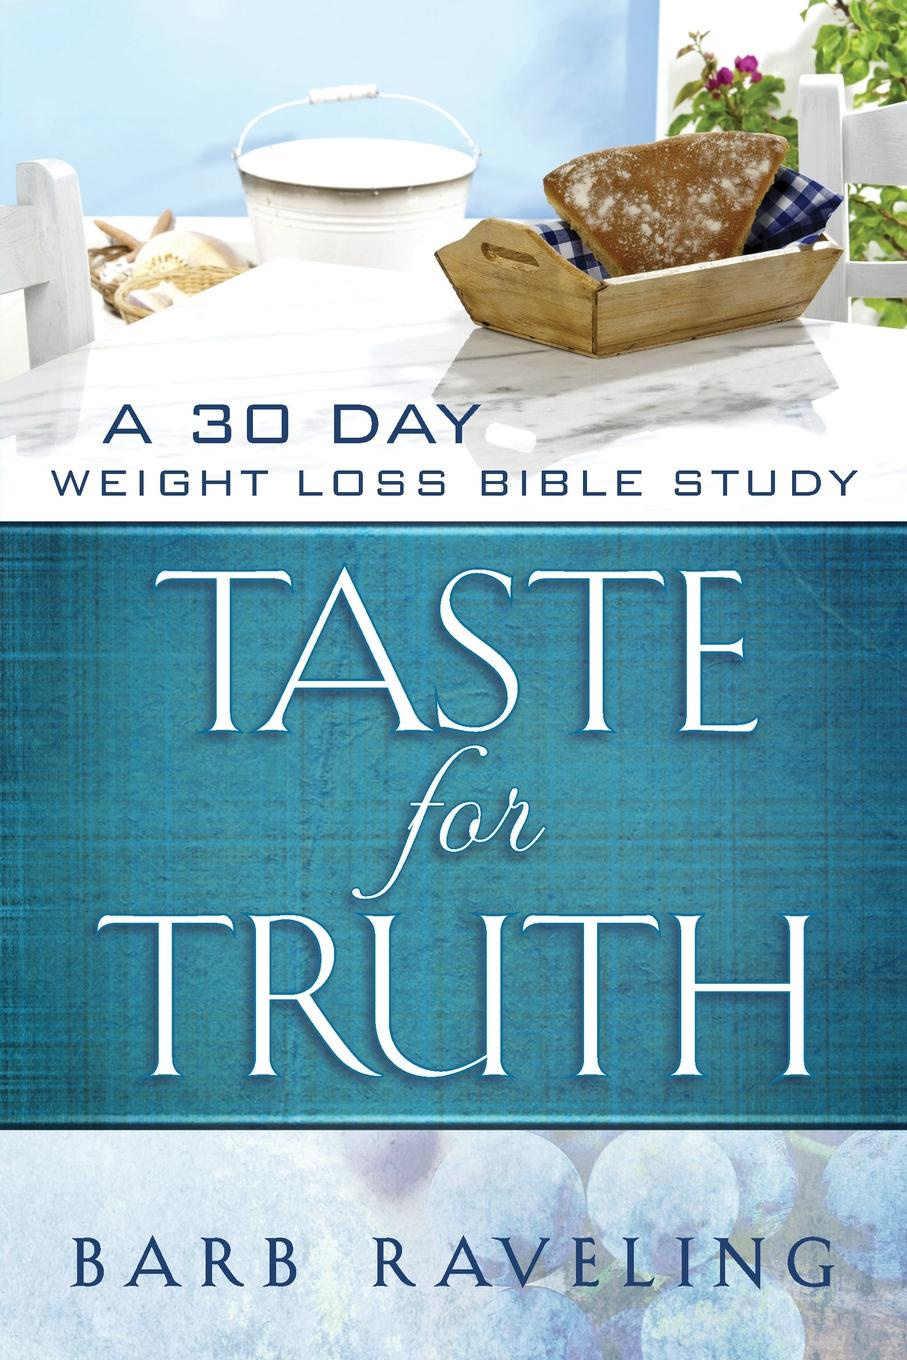 цена Barb Raveling Taste for Truth. A 30 Day Weight Loss Bible Study онлайн в 2017 году